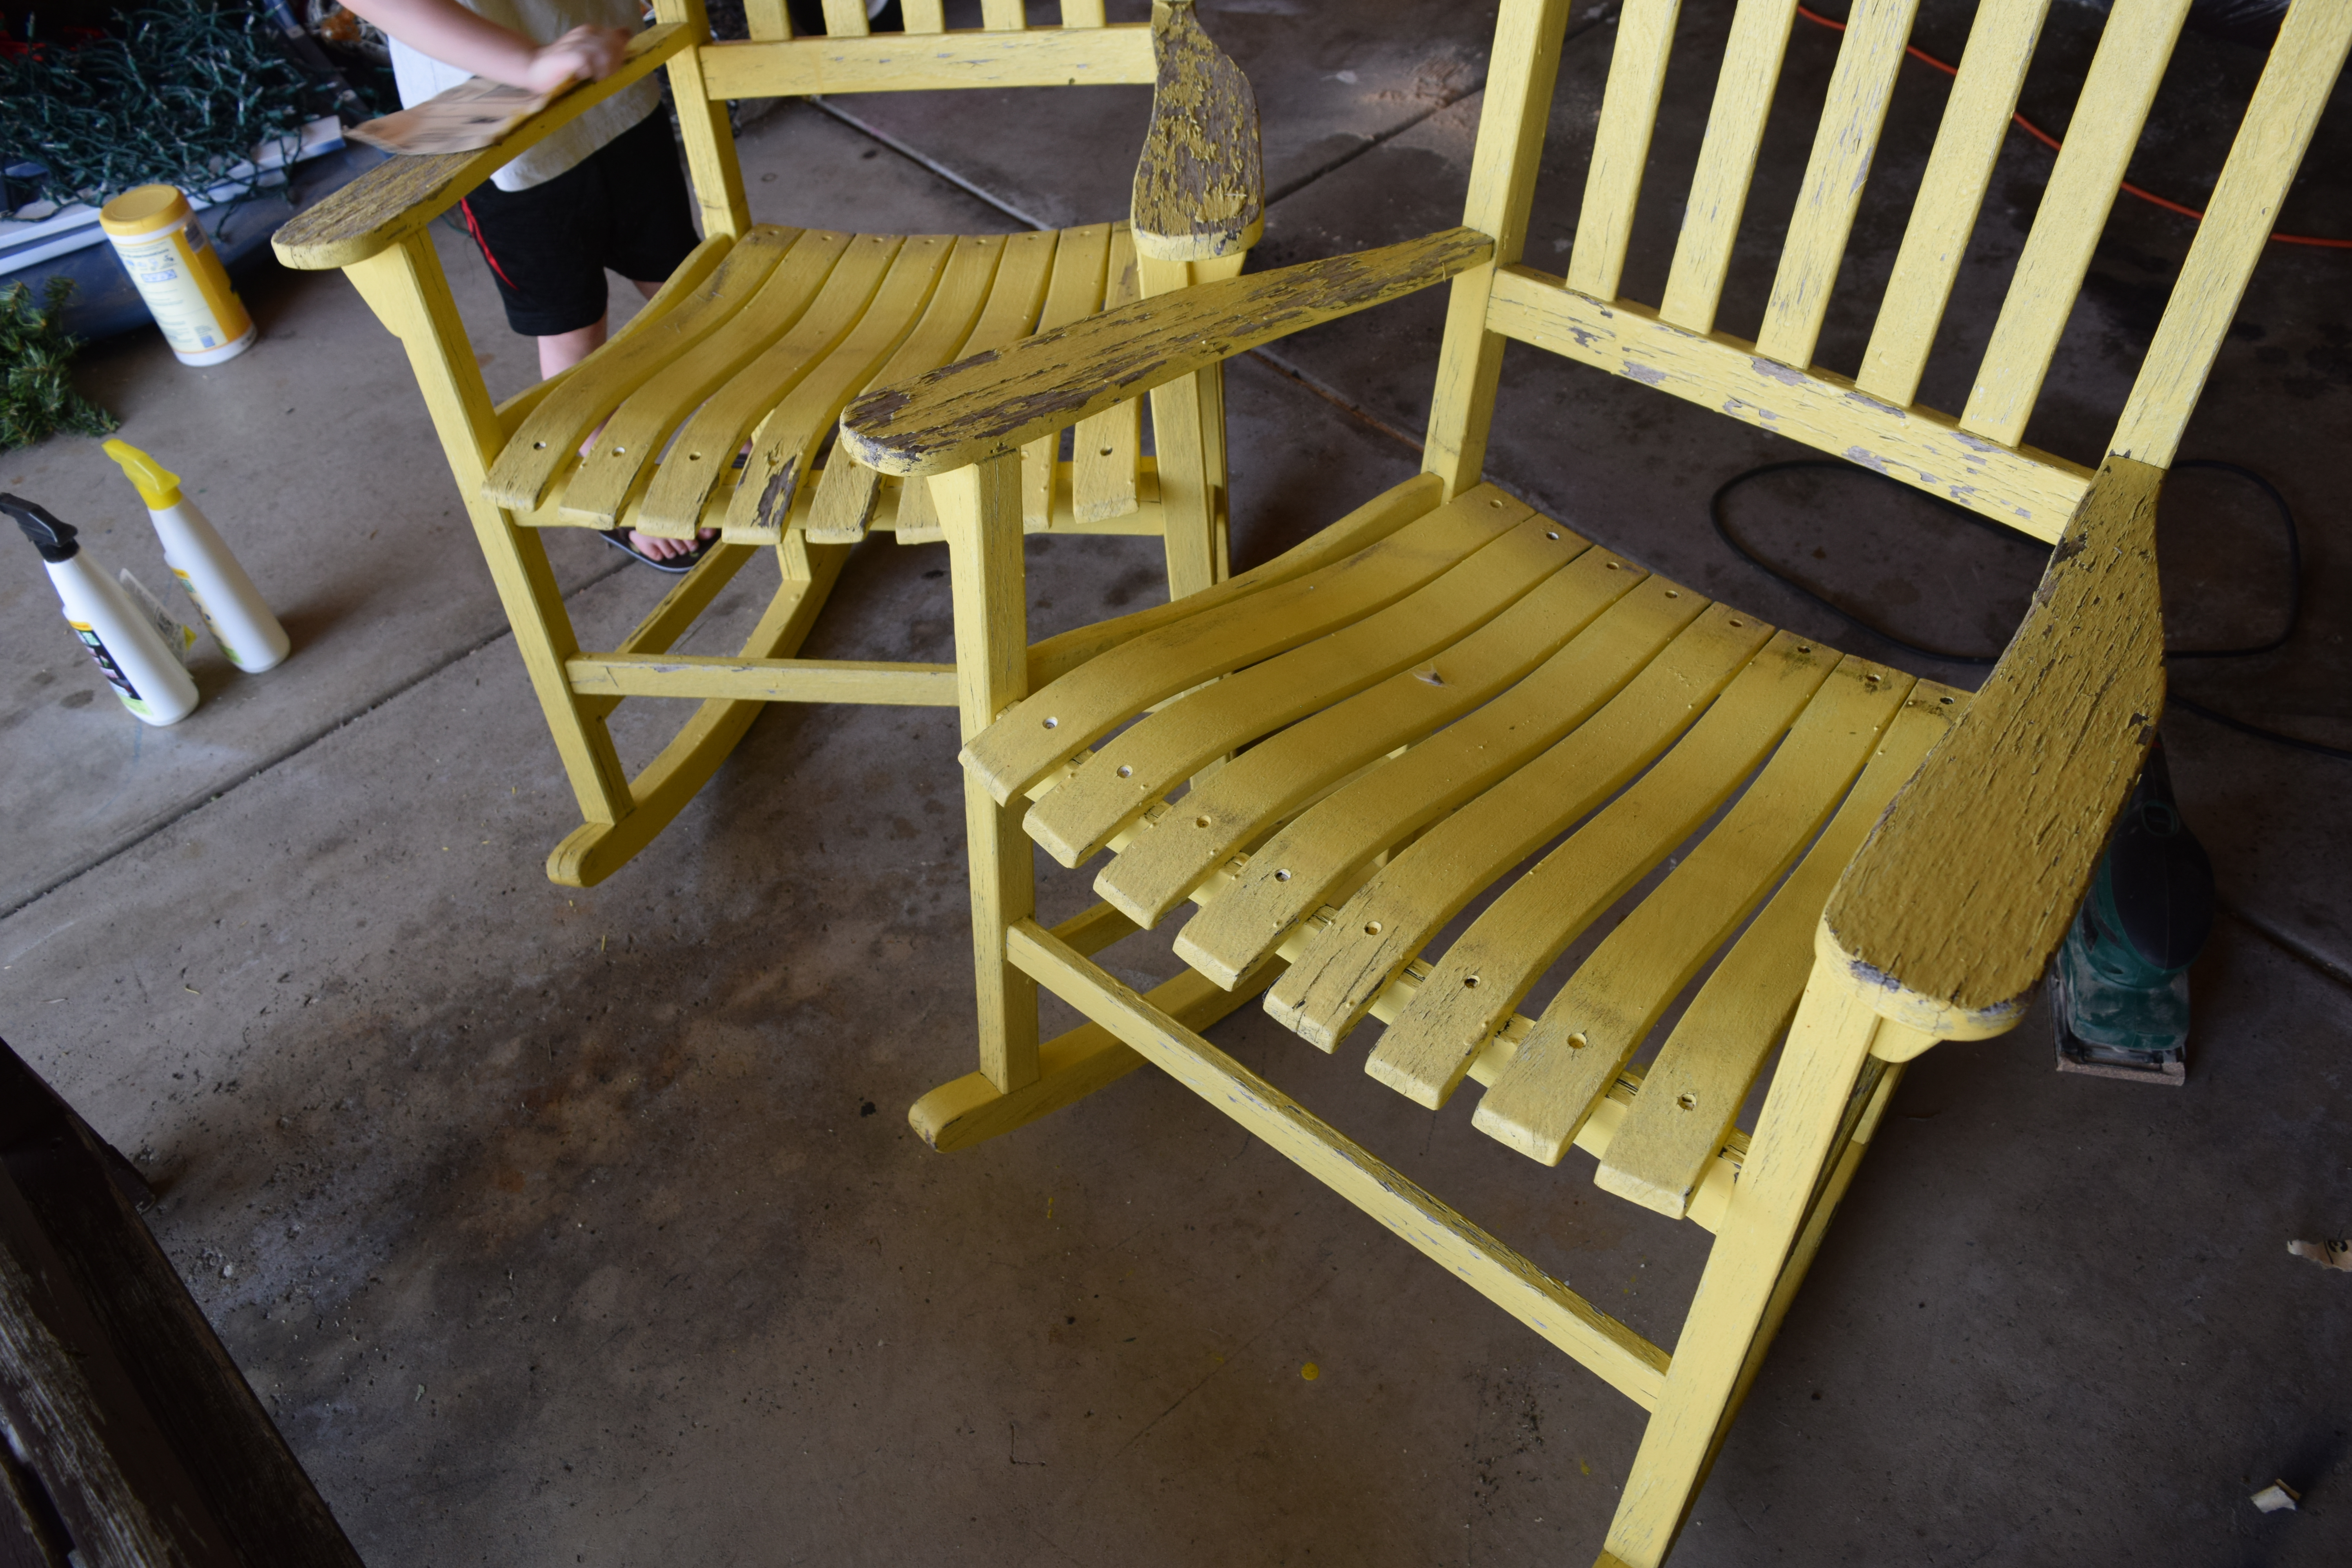 The First Step When Repainting Furniture Is To Sand Down Any Existing  Paint. You Do Not Need To Remove It All, Unless The Paint Color Is Super  Dark.